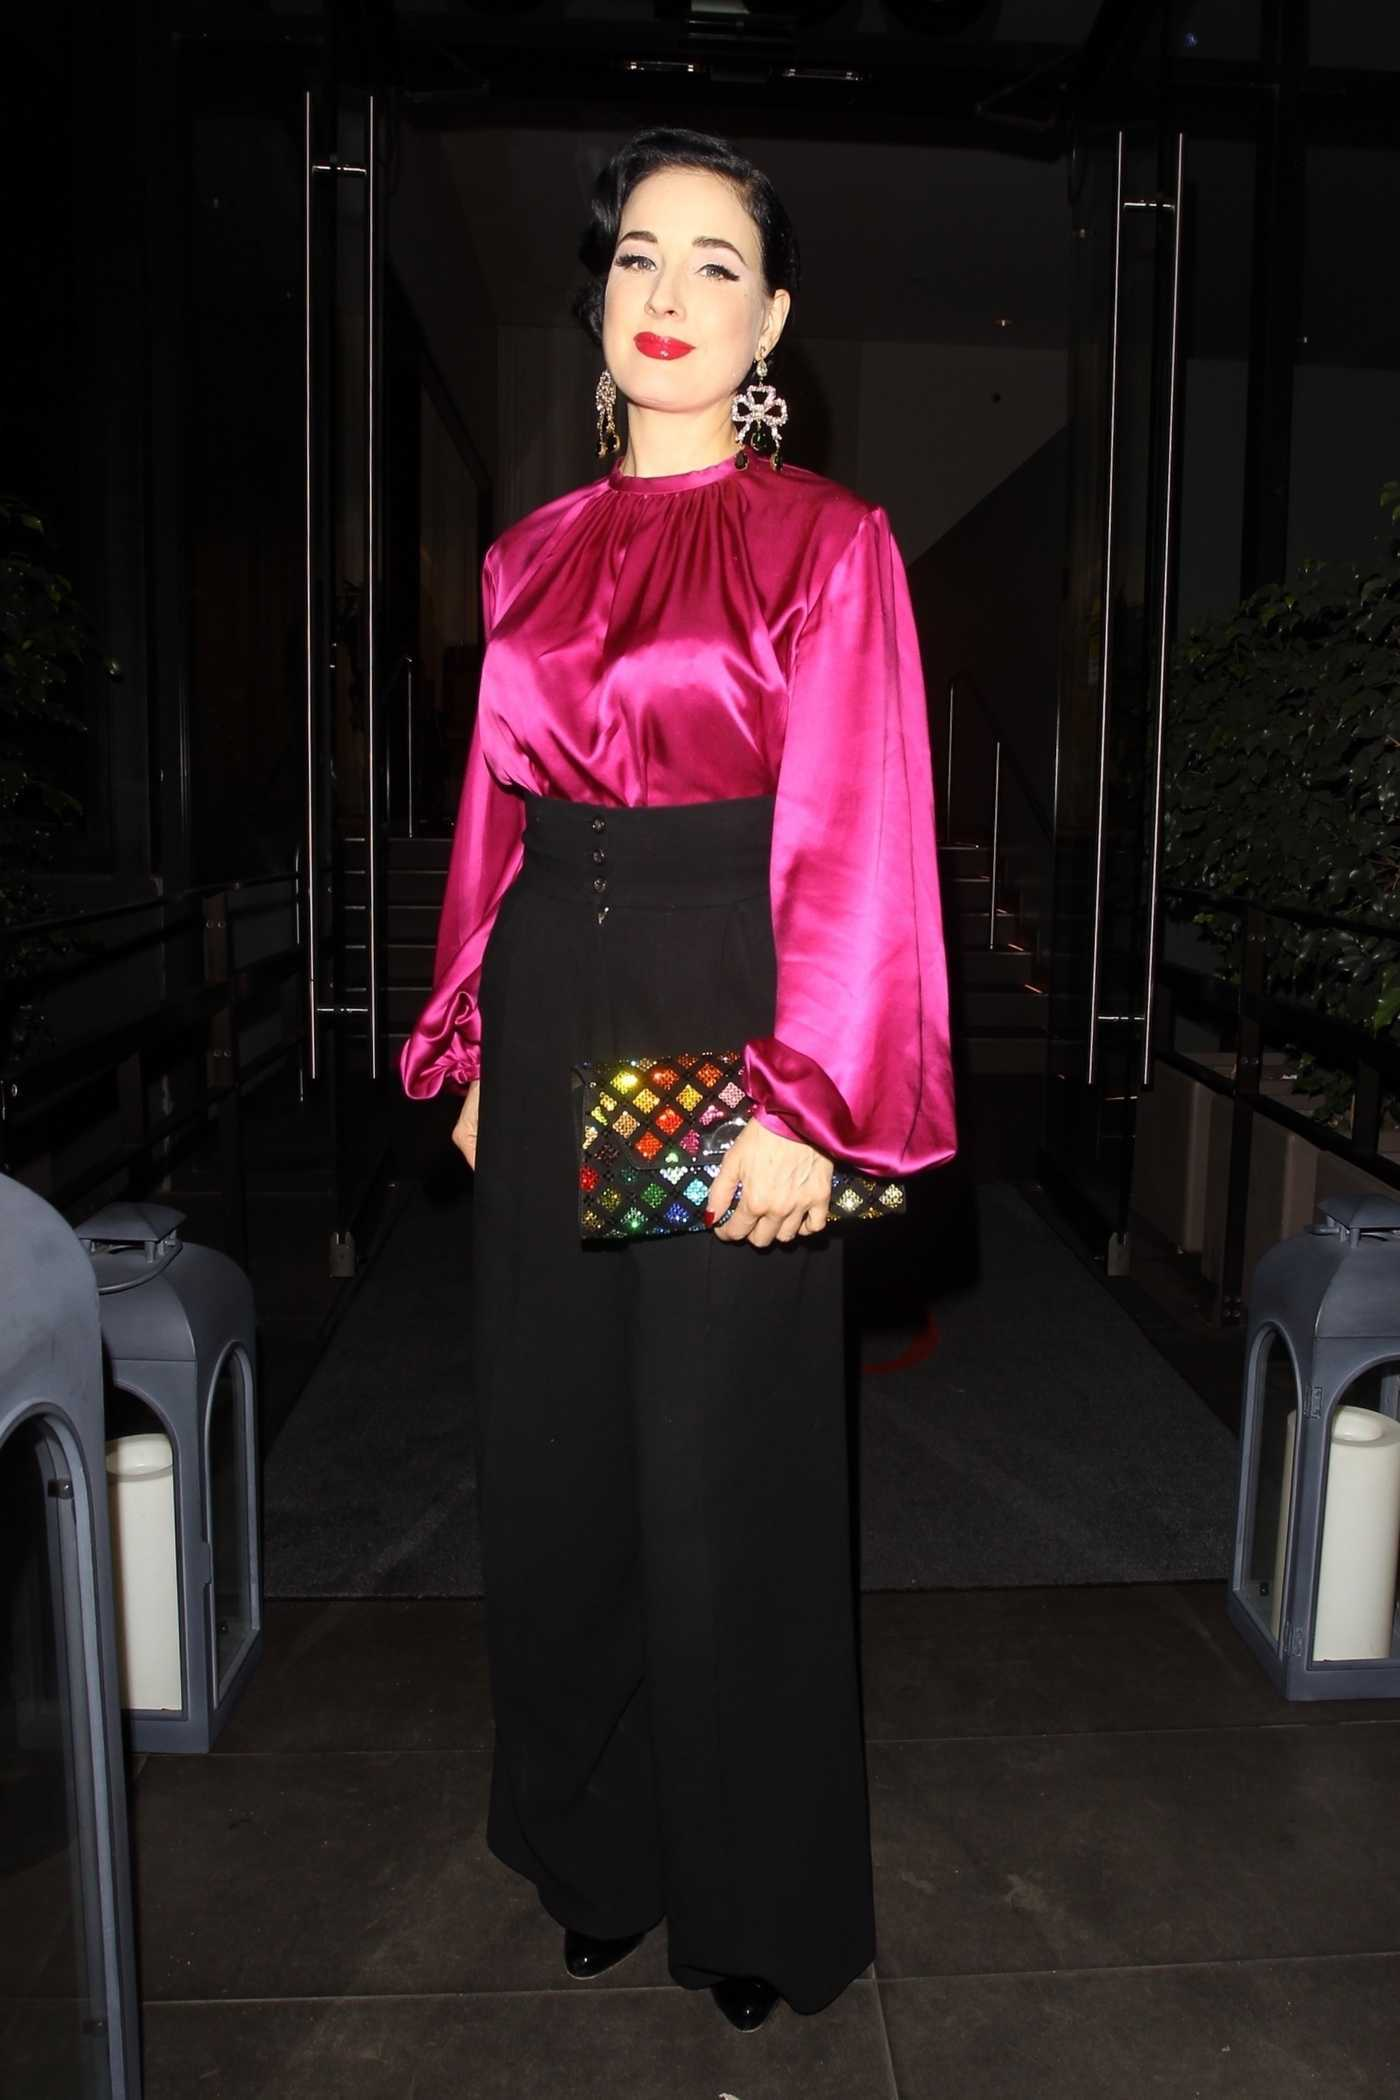 Dita Von Teese in a Fuchsia Blouse Leaves N10 Restaurant in West Hollywood 09/28/2018